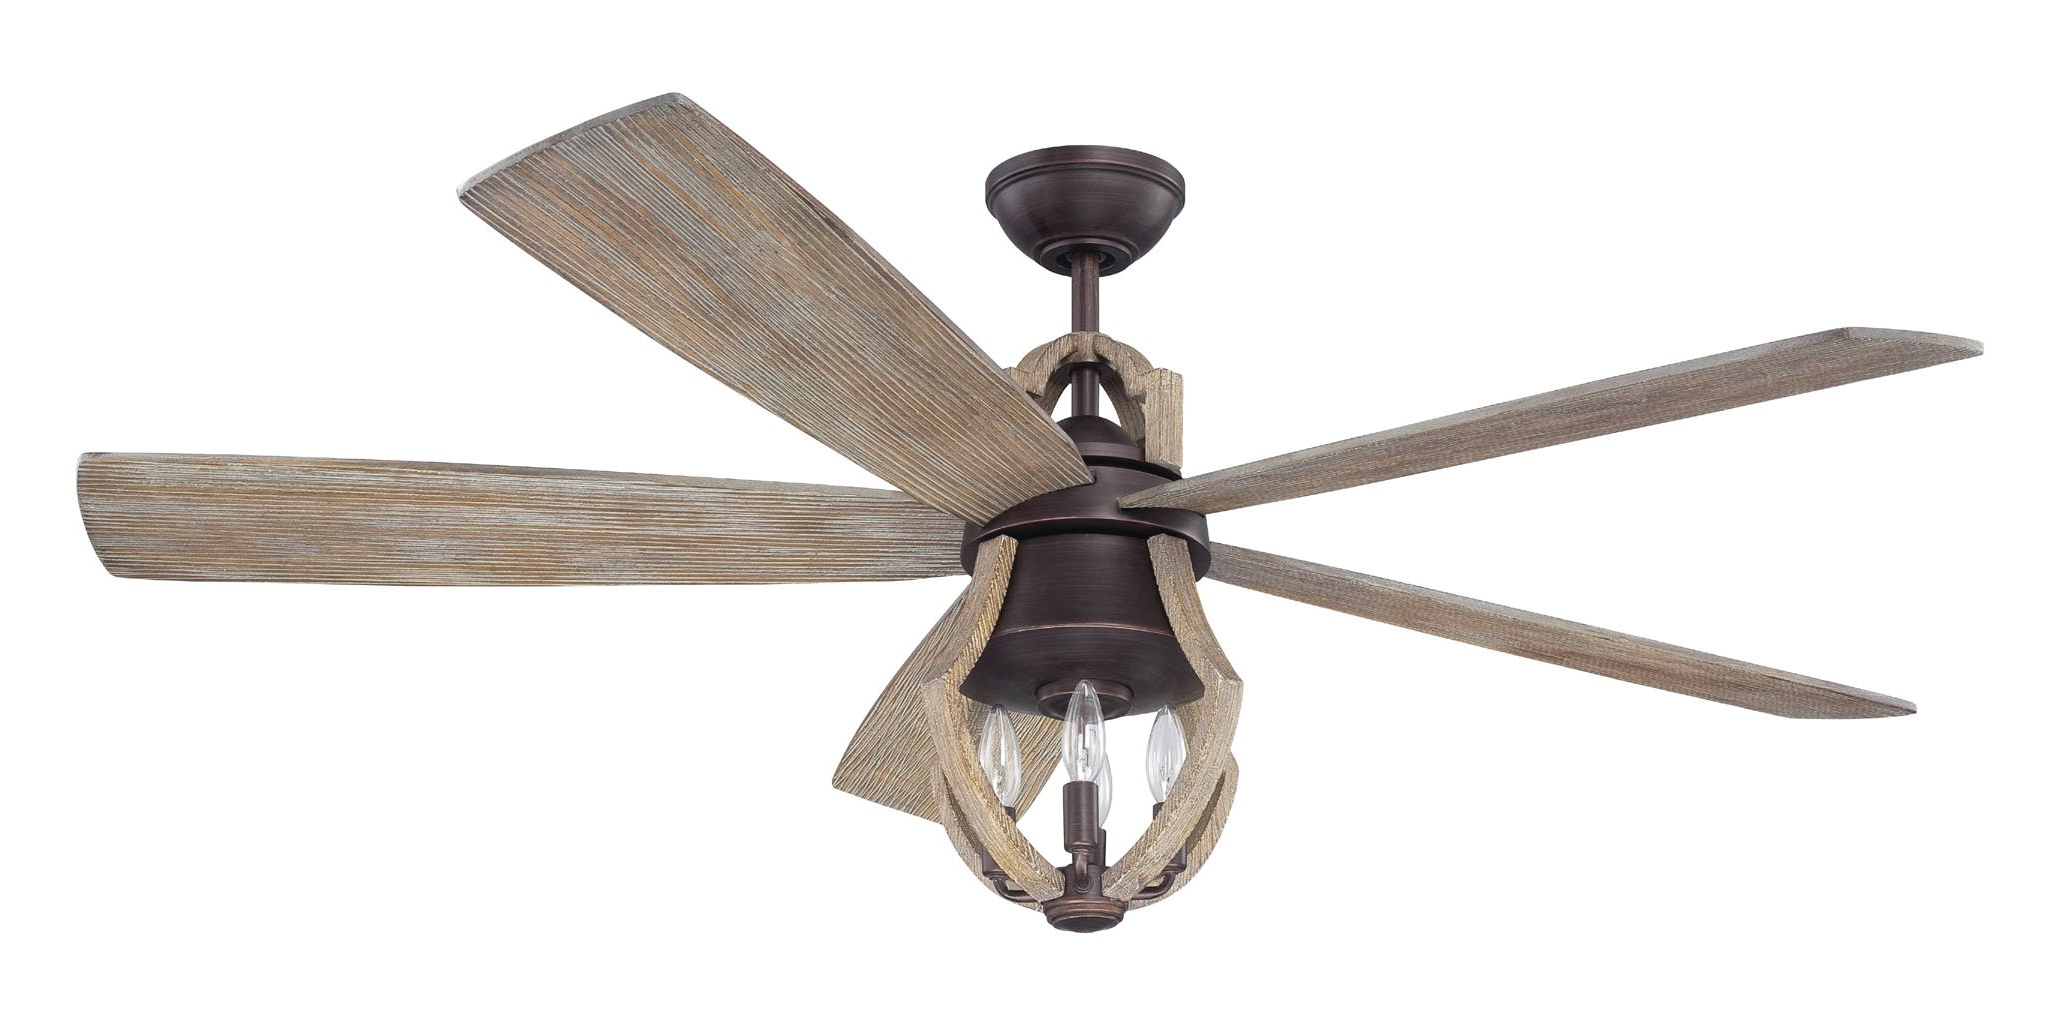 "Dunaghy 5 Blade Ceiling Fans Intended For Most Up To Date Laurel Foundry Modern Farmhouse 56"" Marcoux 5 Blade Ceiling Fan With  Remote, Light Kit Included (View 7 of 20)"